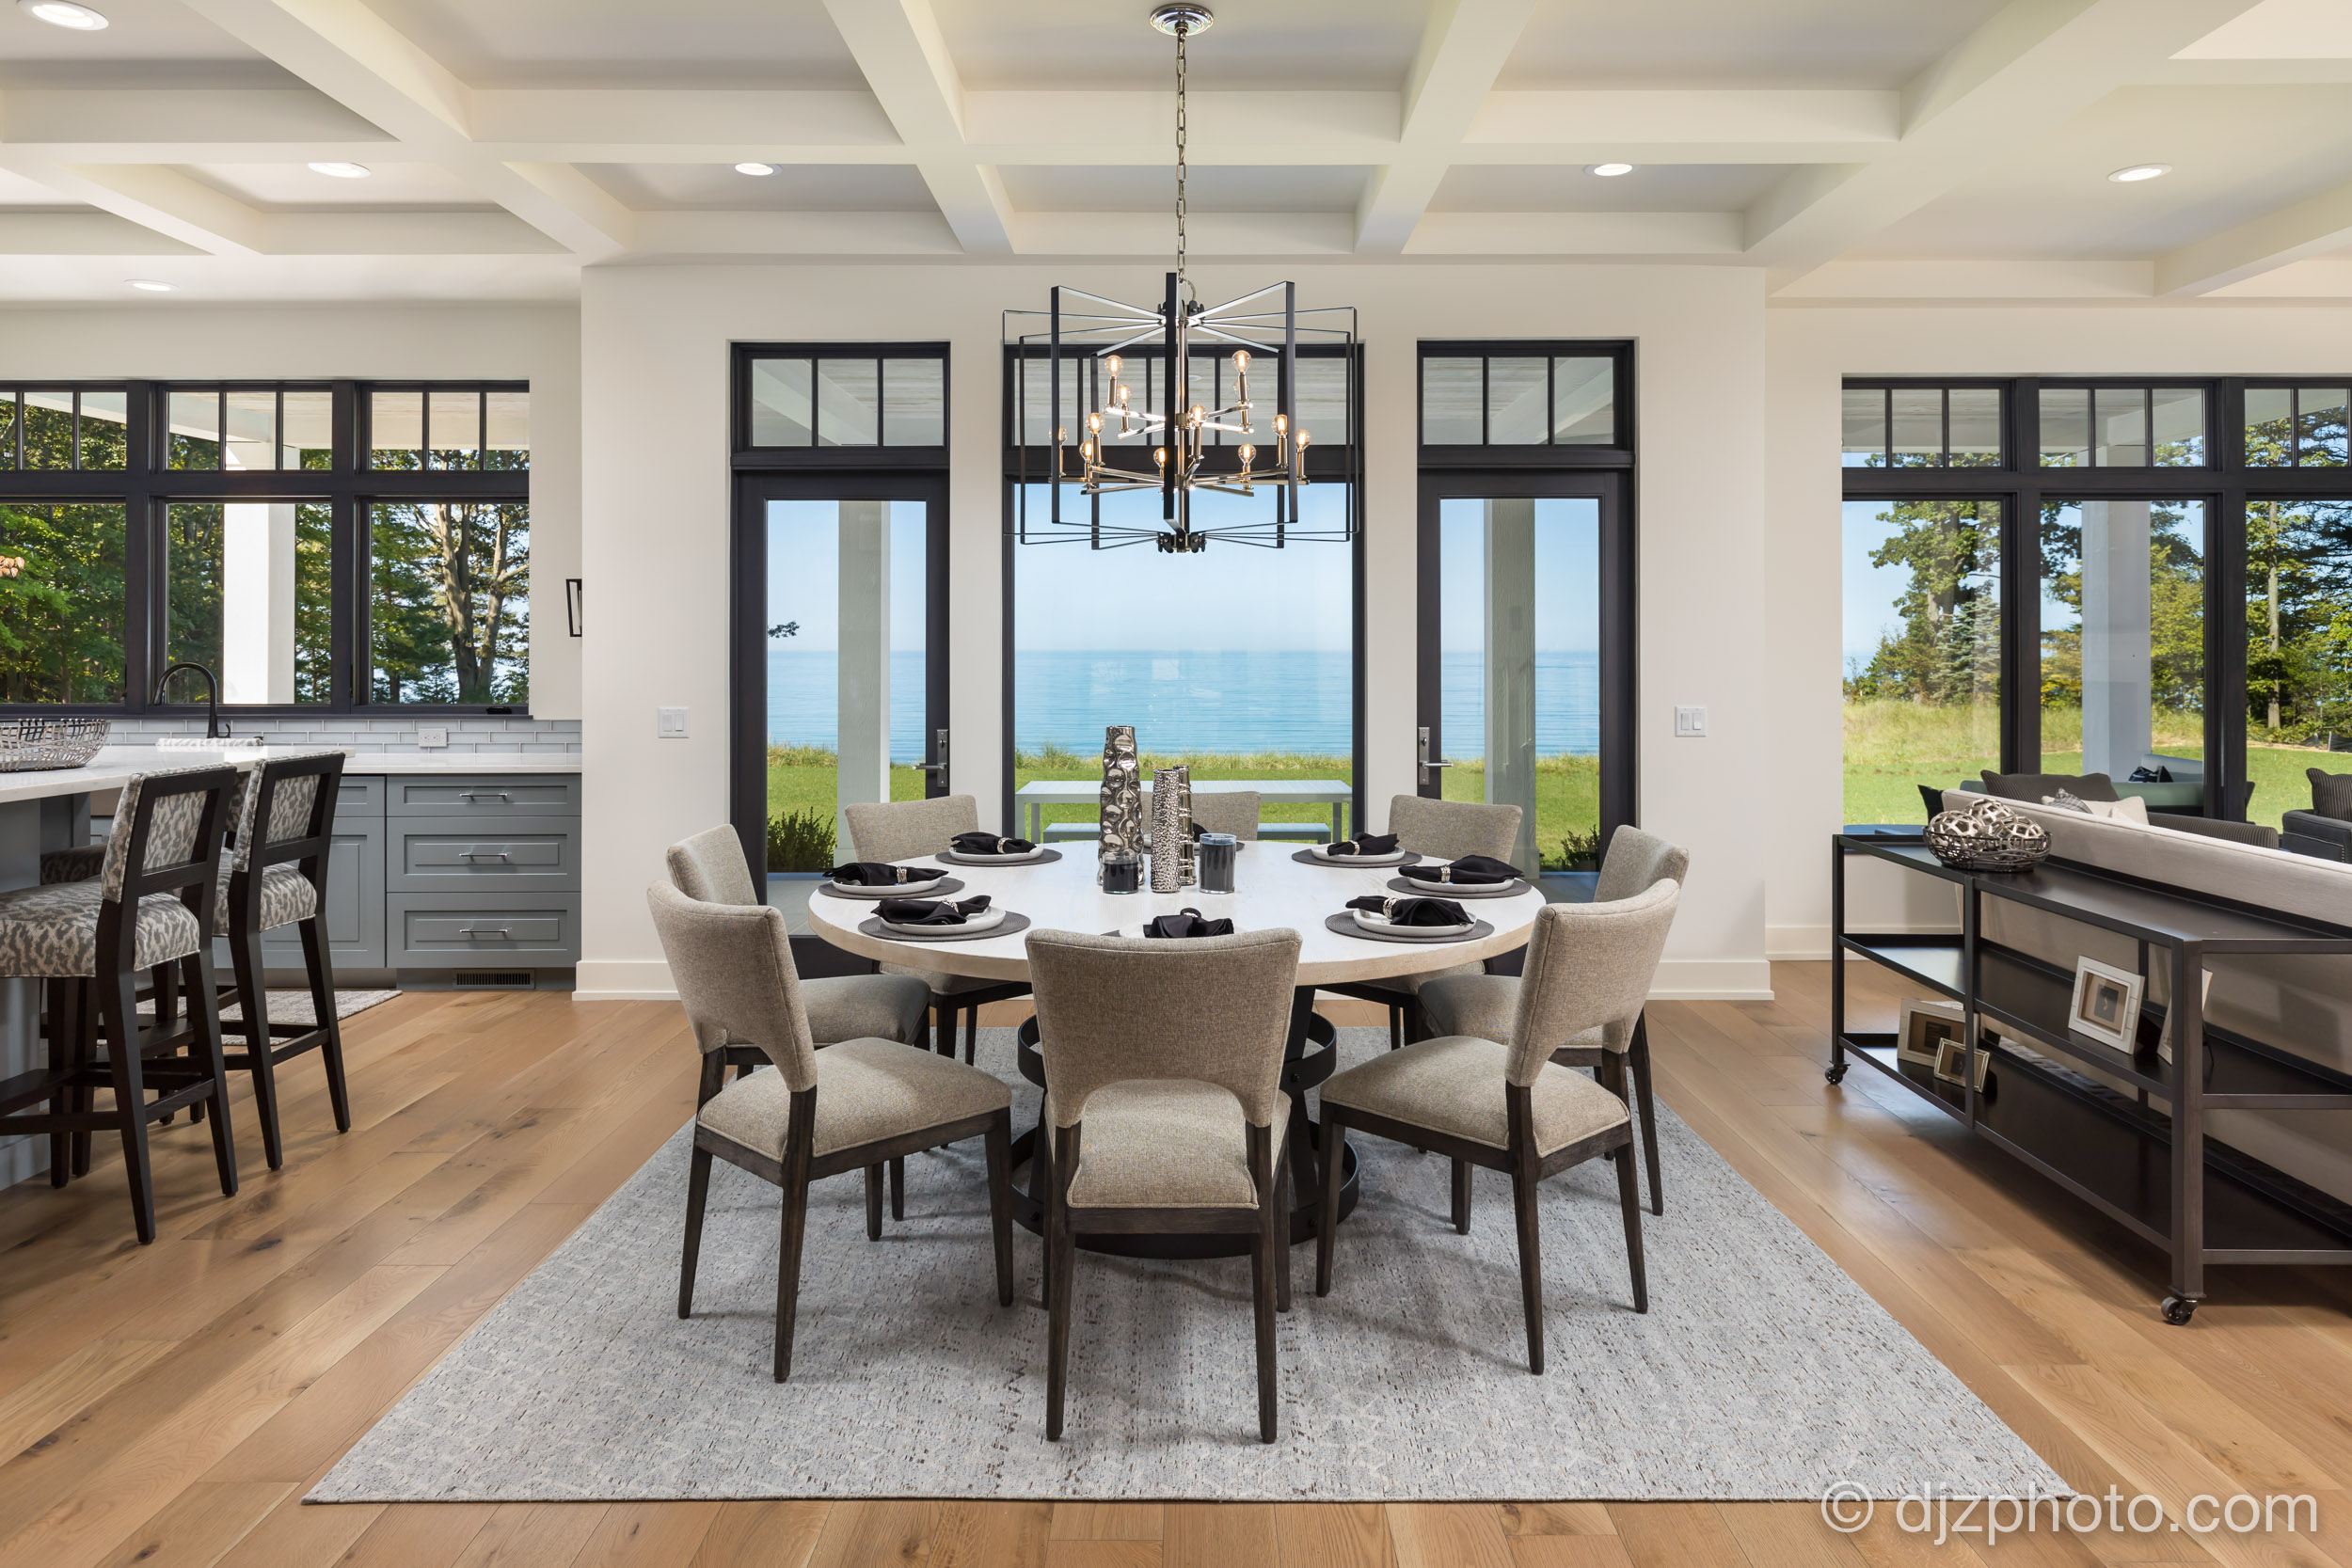 Dining Room by Lake Michigan